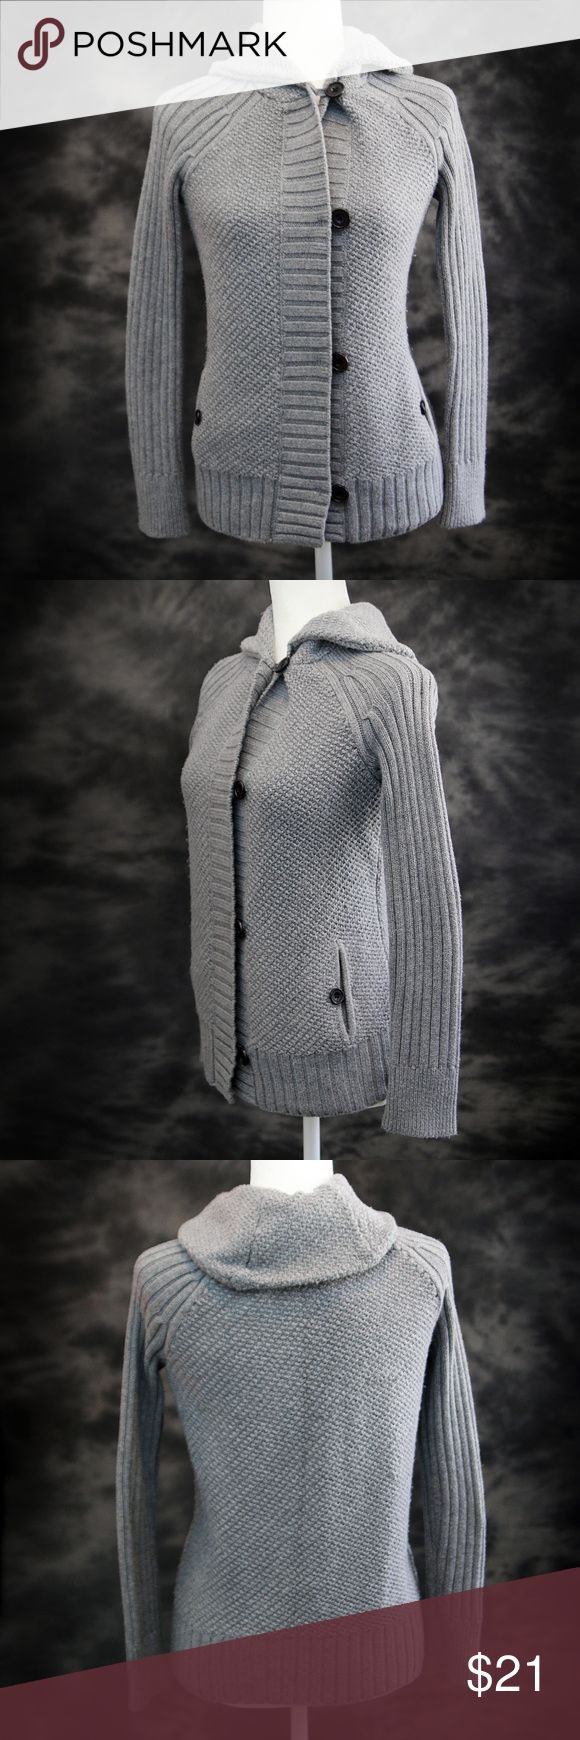 Gap Sweater Size Small •Gap Sweater Size Small •Enjoy this stylish, casual, and classic sweater by Gap.  Great with jeans or dress pants.  •Gently pre-loved sweater in great condition. •55% cotton, 25% rayon, 25% nylon.  •Measurements: lying flat length approx. 25 inches, Armpit to Armpit approx. 17 inches, sleeves approx. 26.5 inches. •Happy Shopping and Thank You for visiting Finas Fashions! (34) GAP Sweaters